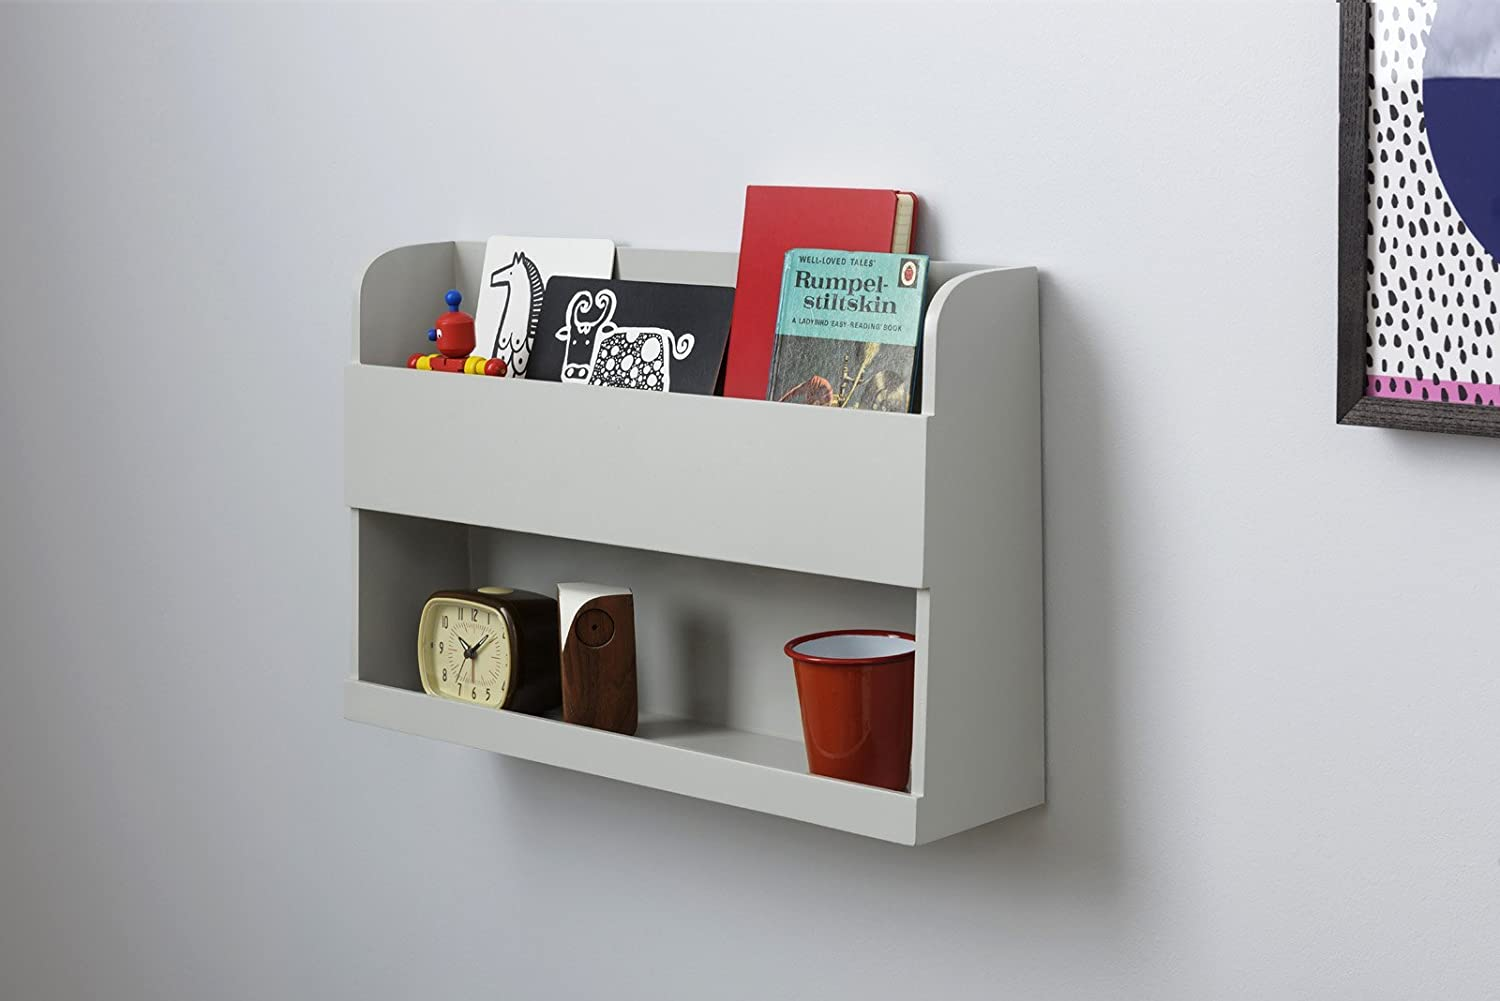 Tidy Books ® -The Original Bunk Bed Buddy™, Bunk Bed Shelf in Pale Grey. - Floating Shelves for Kids Storage next to Bunk Beds and Cabin Beds | ECO Friendly | HANDMADE | Wooden Shelves - 33 x 53 x 12cm